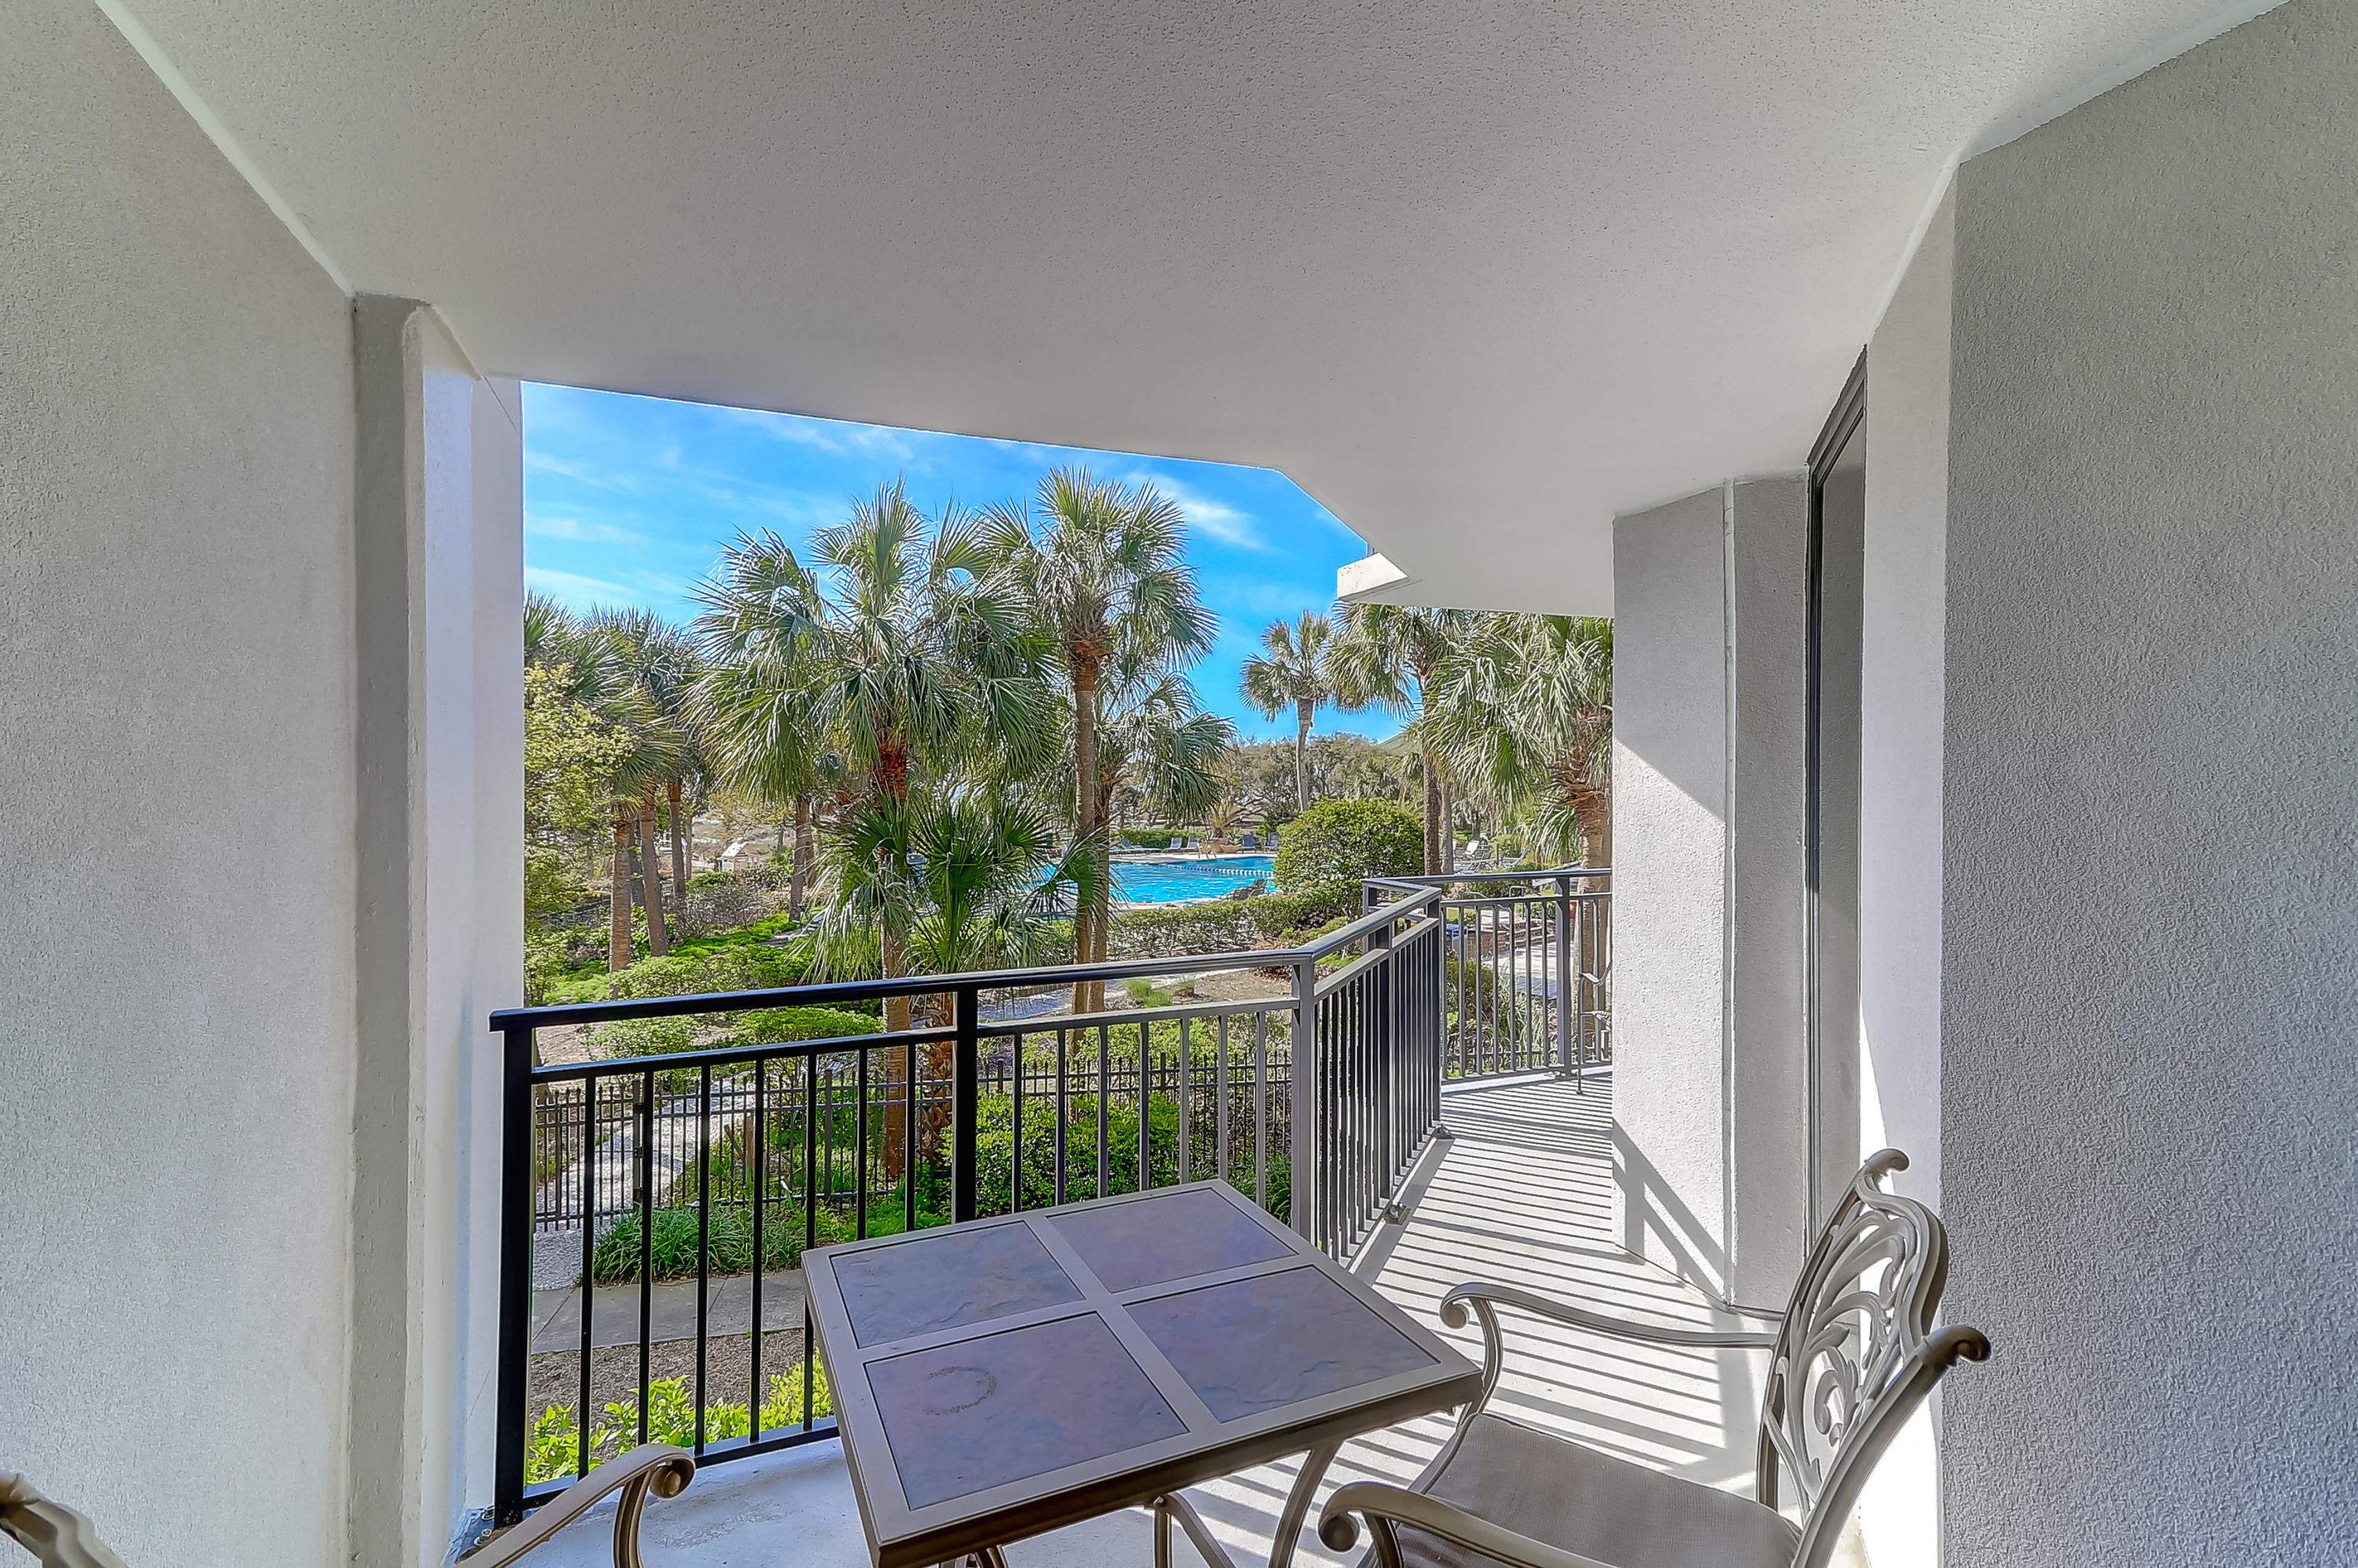 Wild Dunes Homes For Sale - 116-C Shipwatch, Isle of Palms, SC - 12